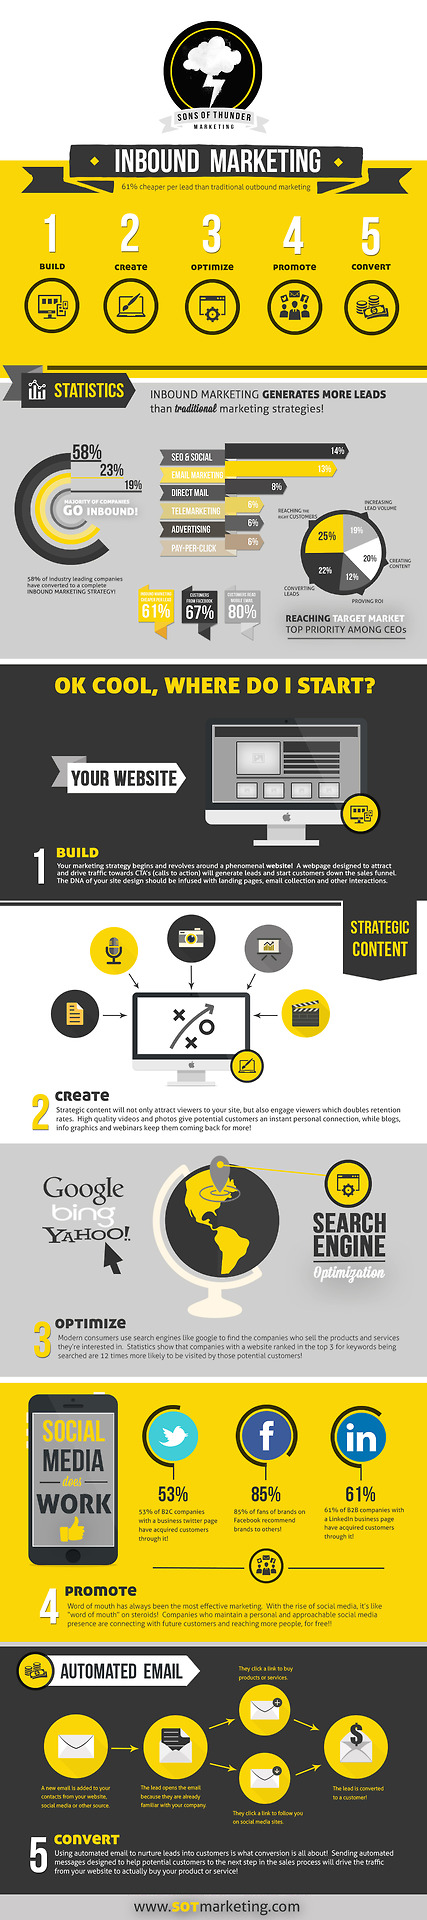 infographicjournal: An In Depth Guide To Inbound Marketing